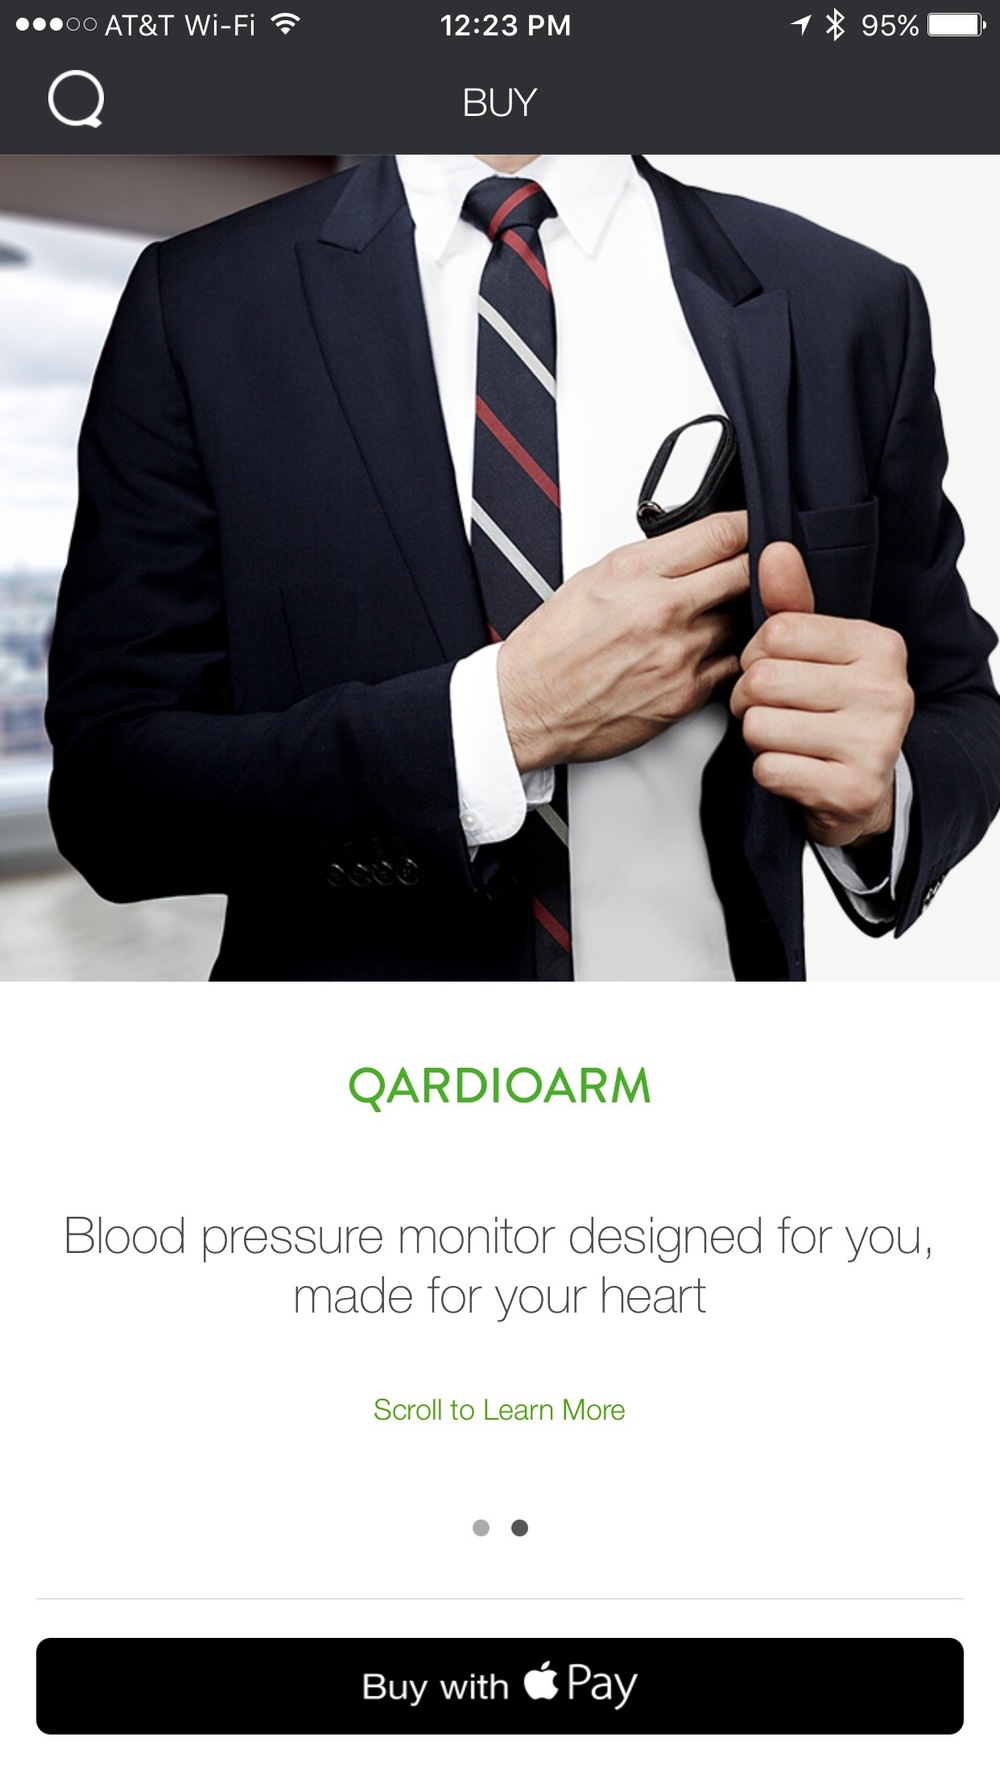 QardioArm Buy Now